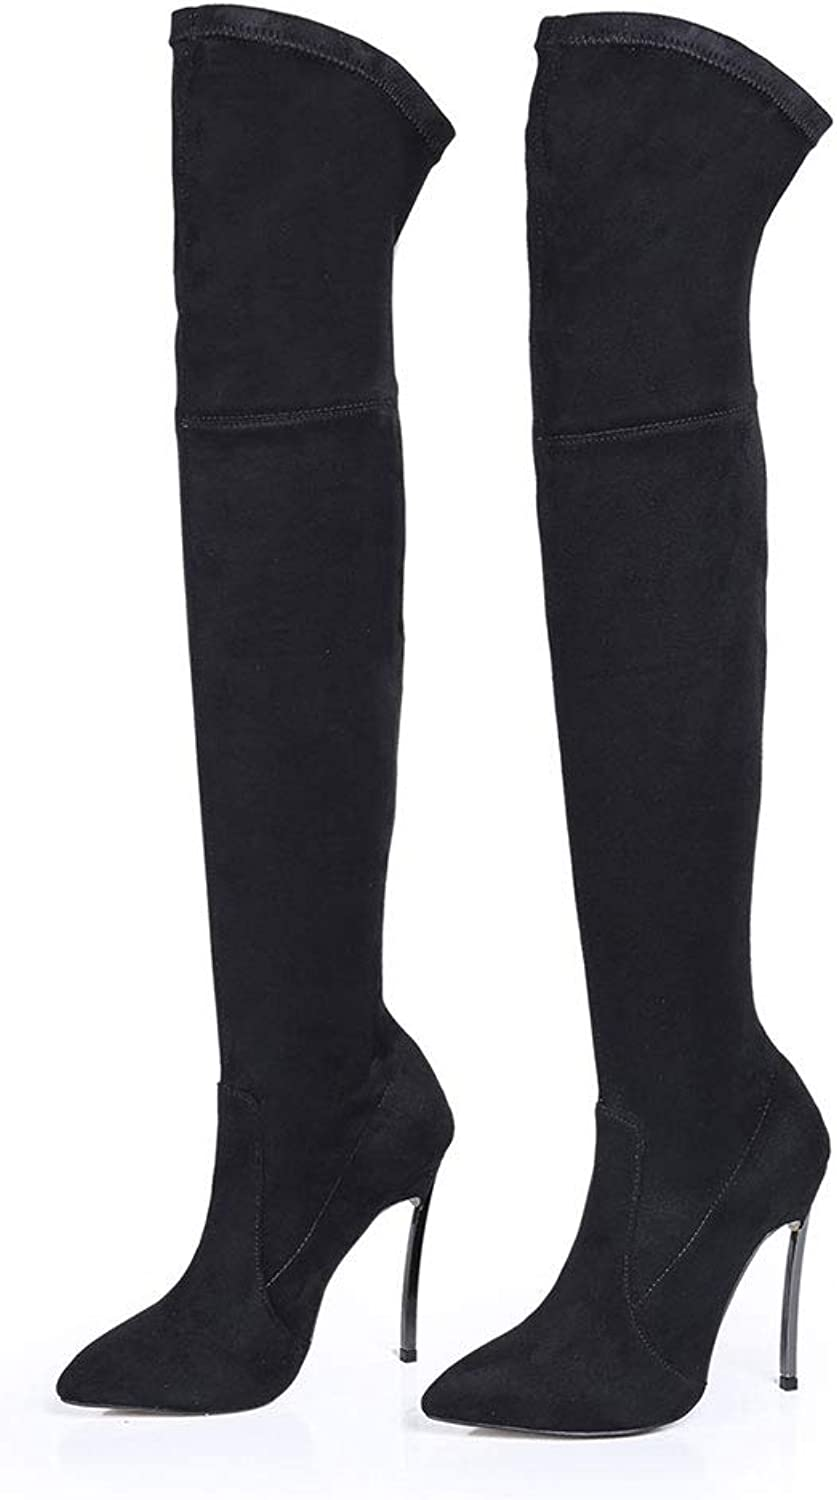 High Heels Over The Knee Boots Women's Stiletto Elastic Boots Pointed Large Size High Boots Sewing Thread Thigh High Waterproof Platform Comfortable Long Boots